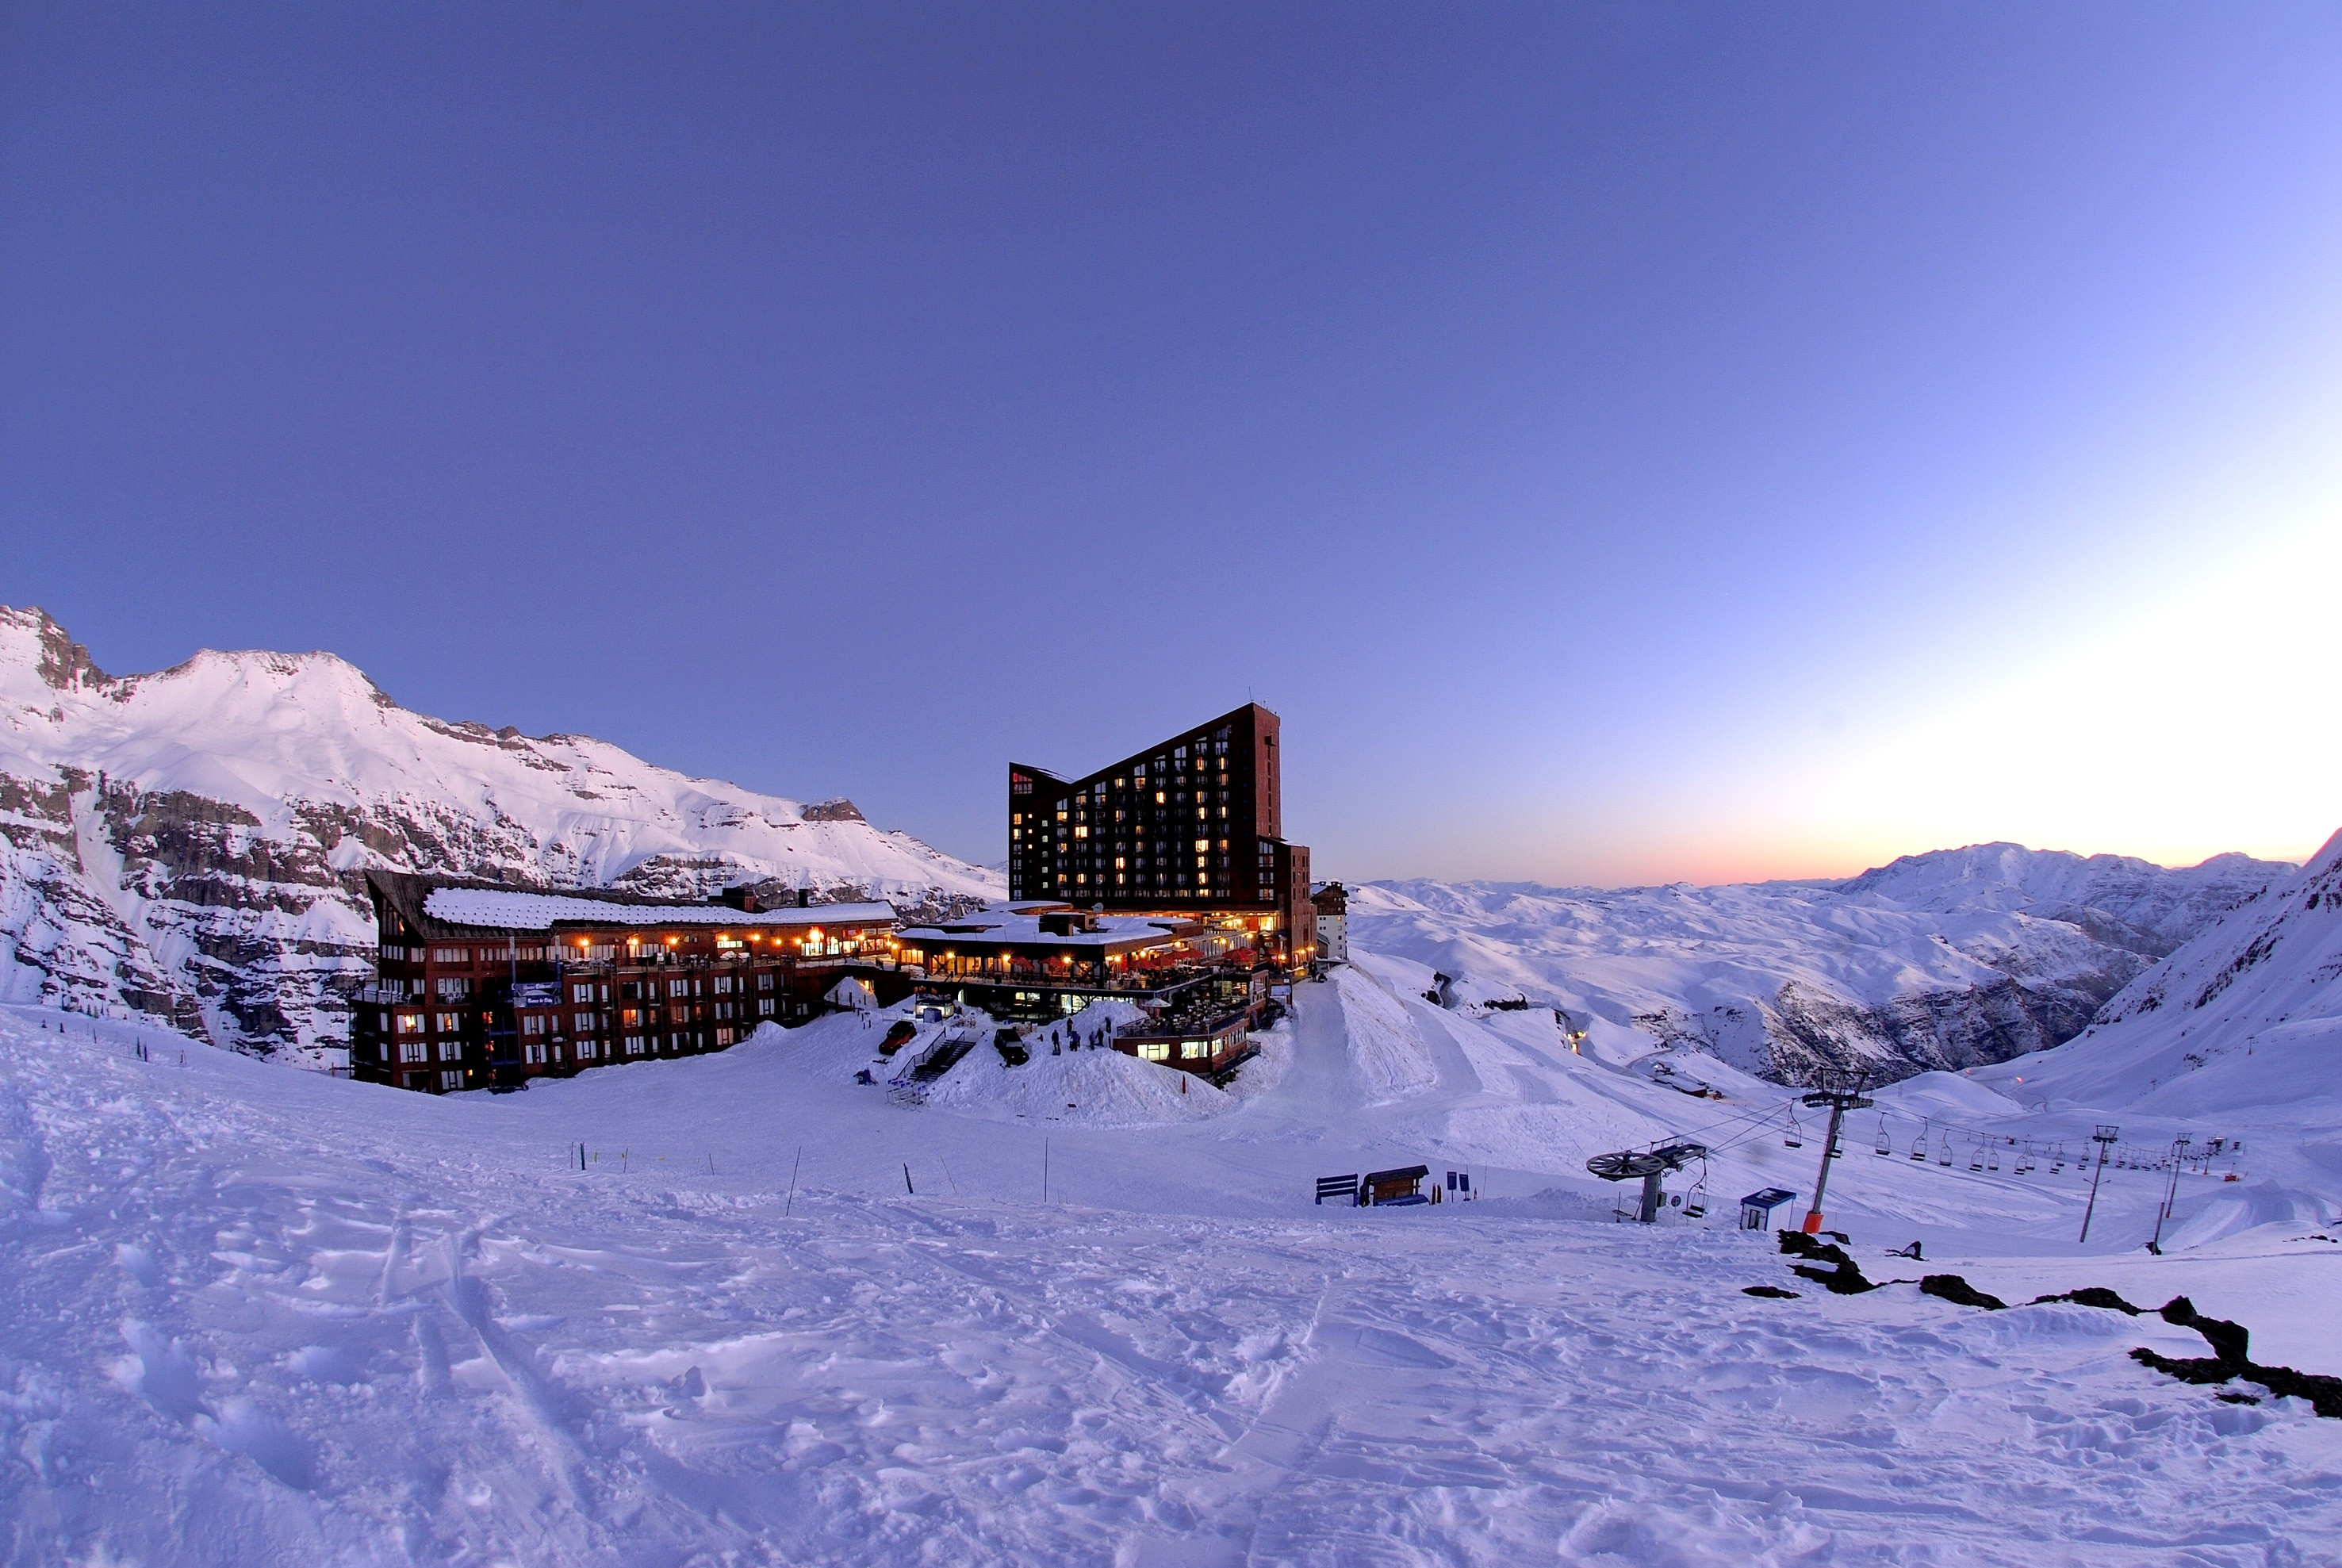 Valle Nevado Resort  CHI scenicundefined